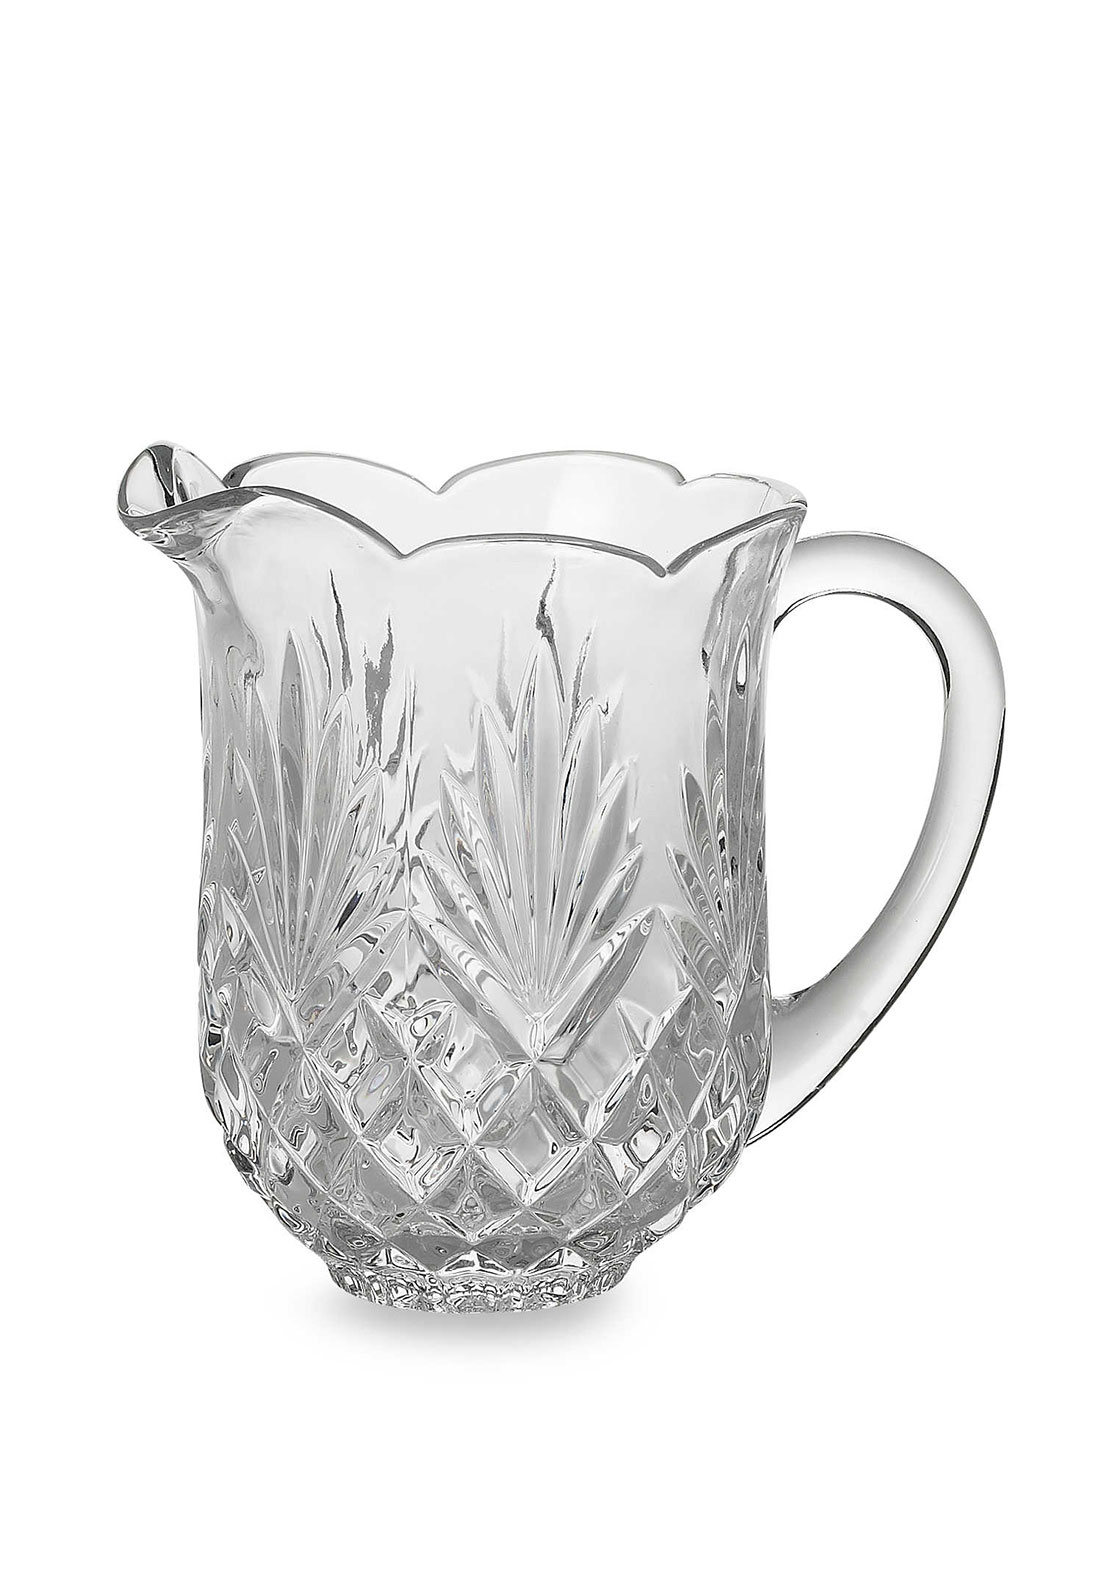 Killarney Crystal Trinity Pitcher